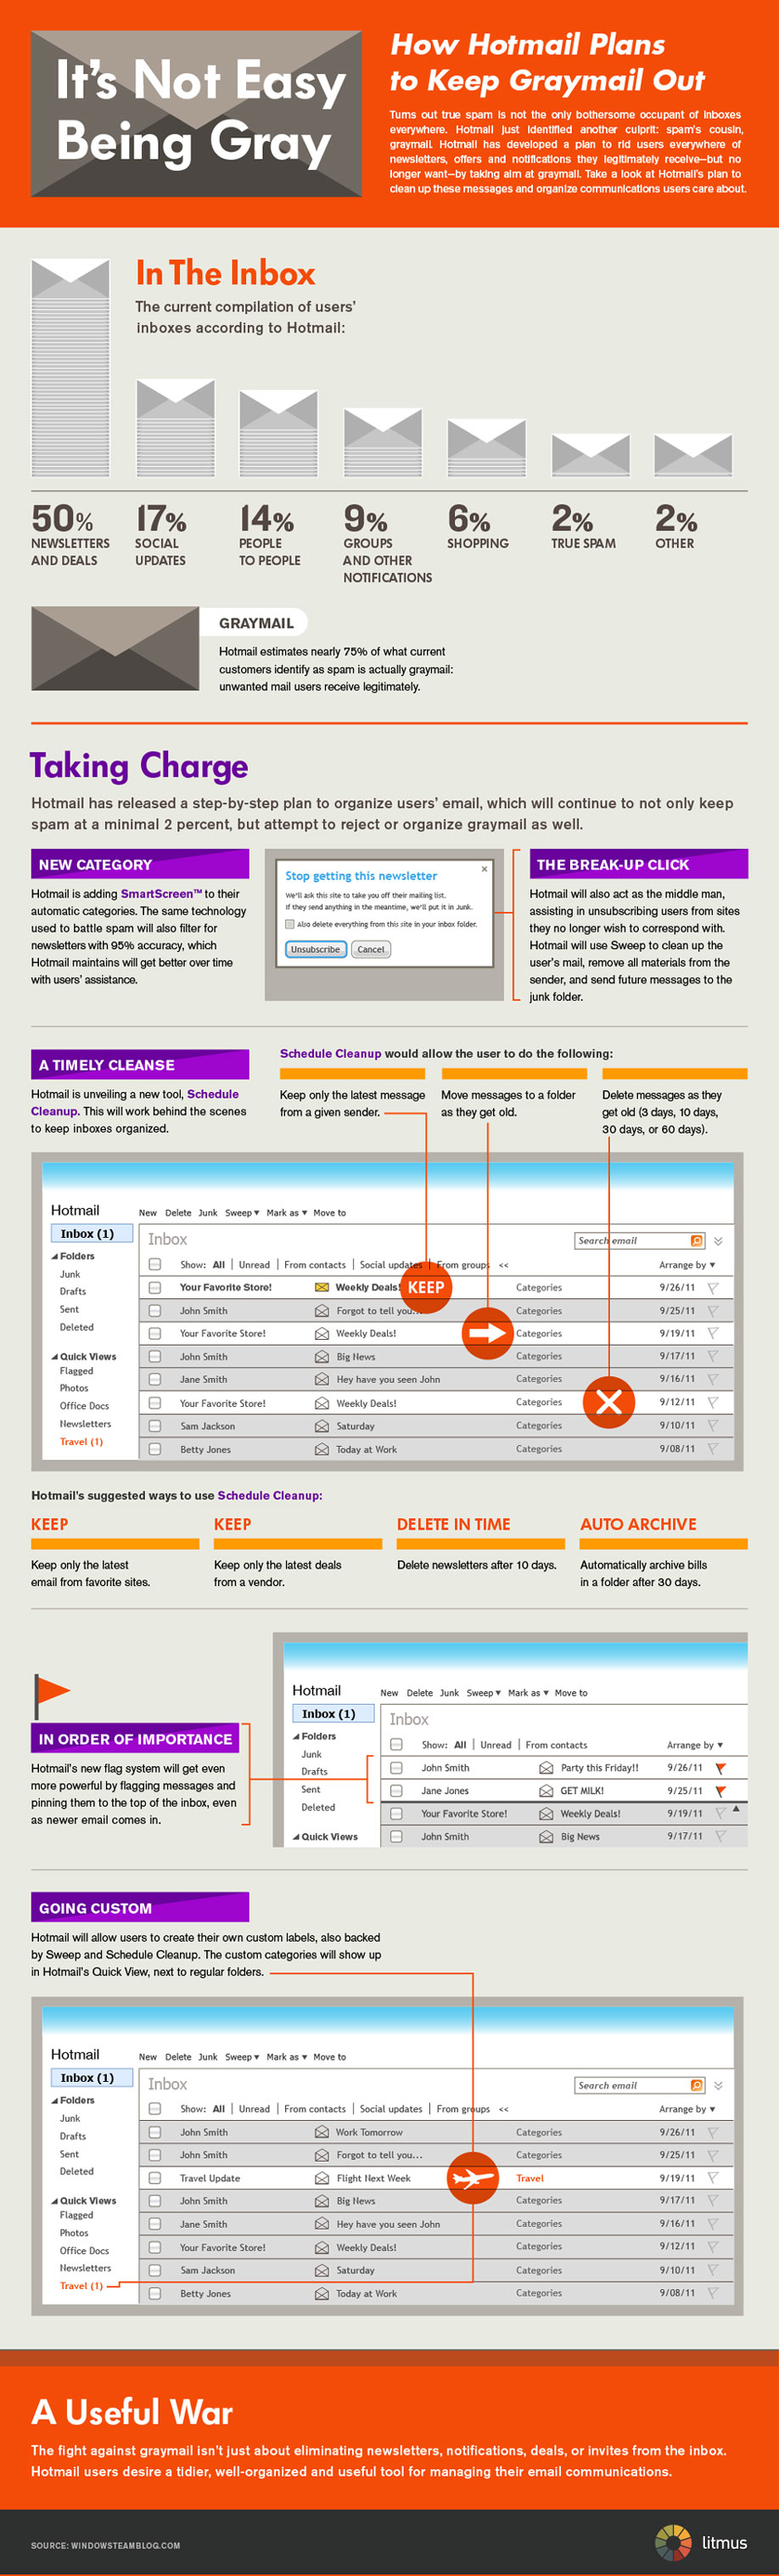 Infographic: Hotmail's Graymail: Their Plan of Attack